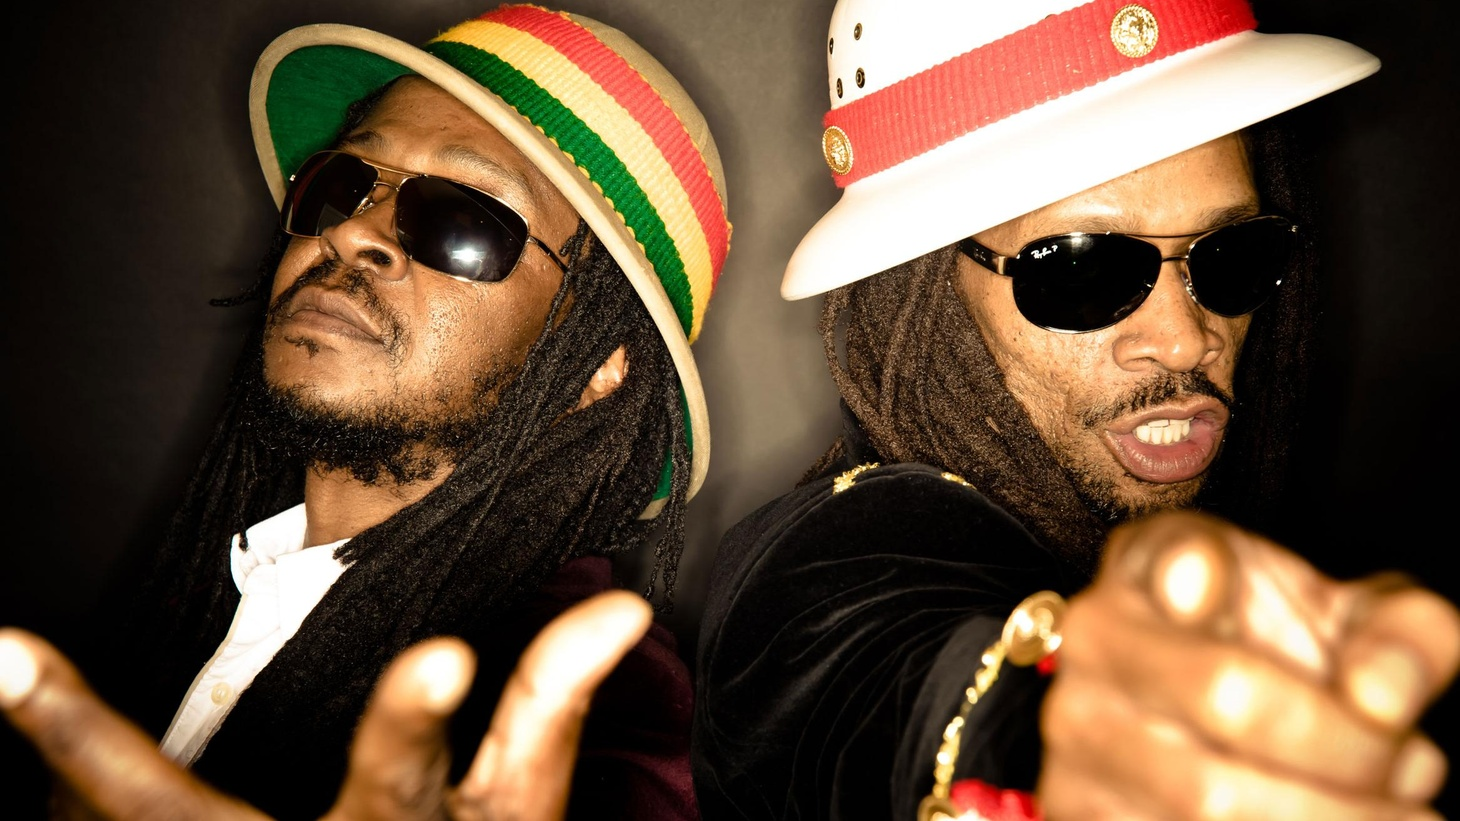 Brothers Arthur and Archie Steele who make up See-I have been a fixture in Washington DC's Reggae scene since the late 80's....